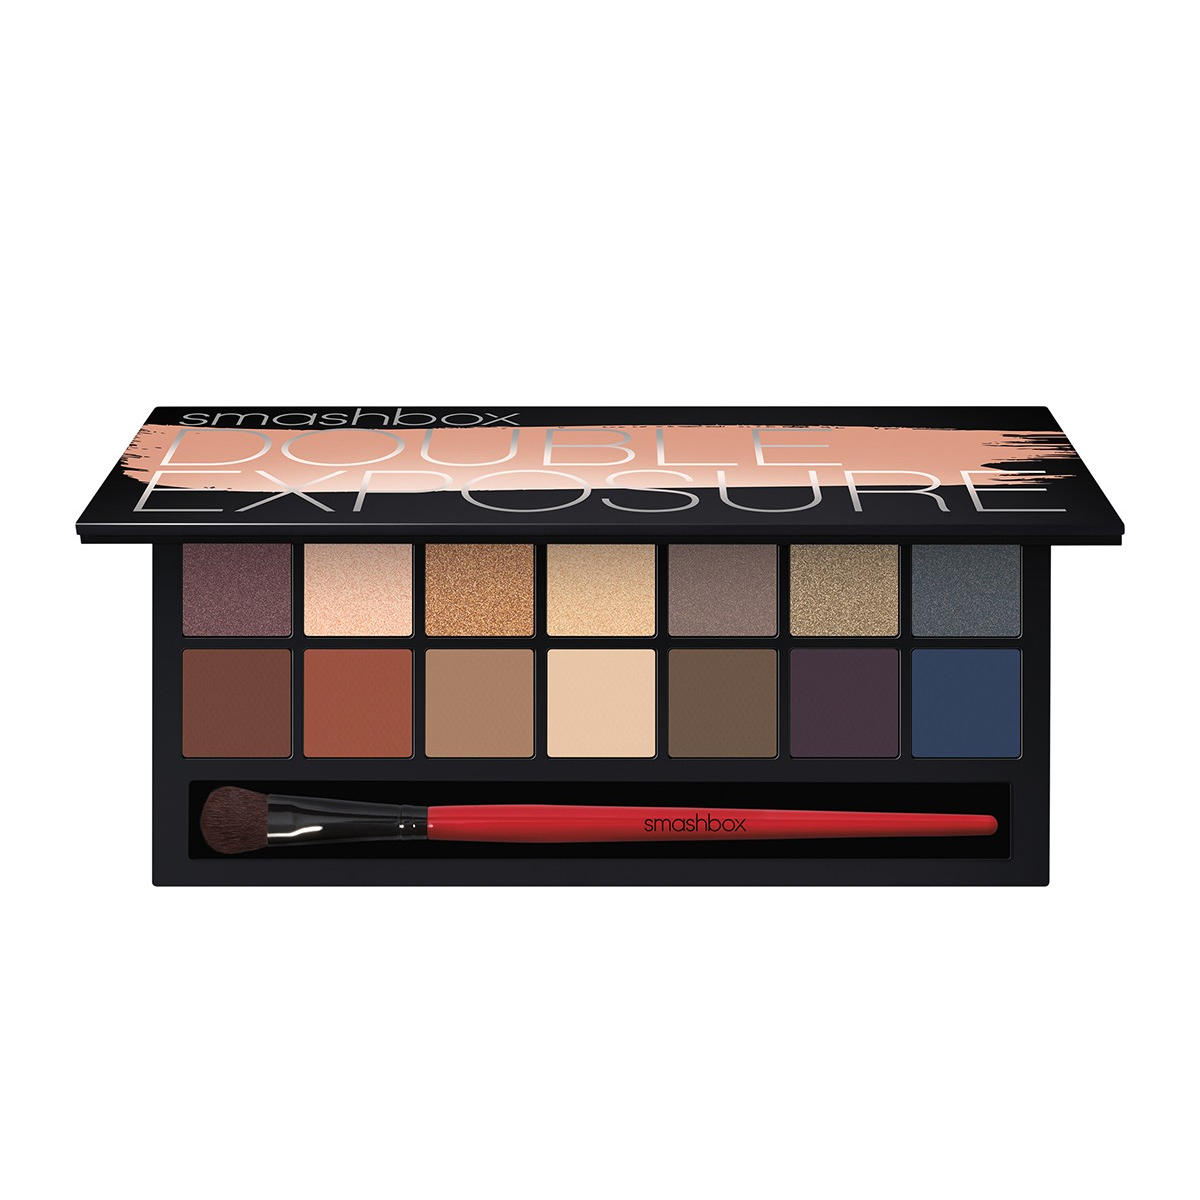 2nd Chance Smashbox Double Exposure Palette